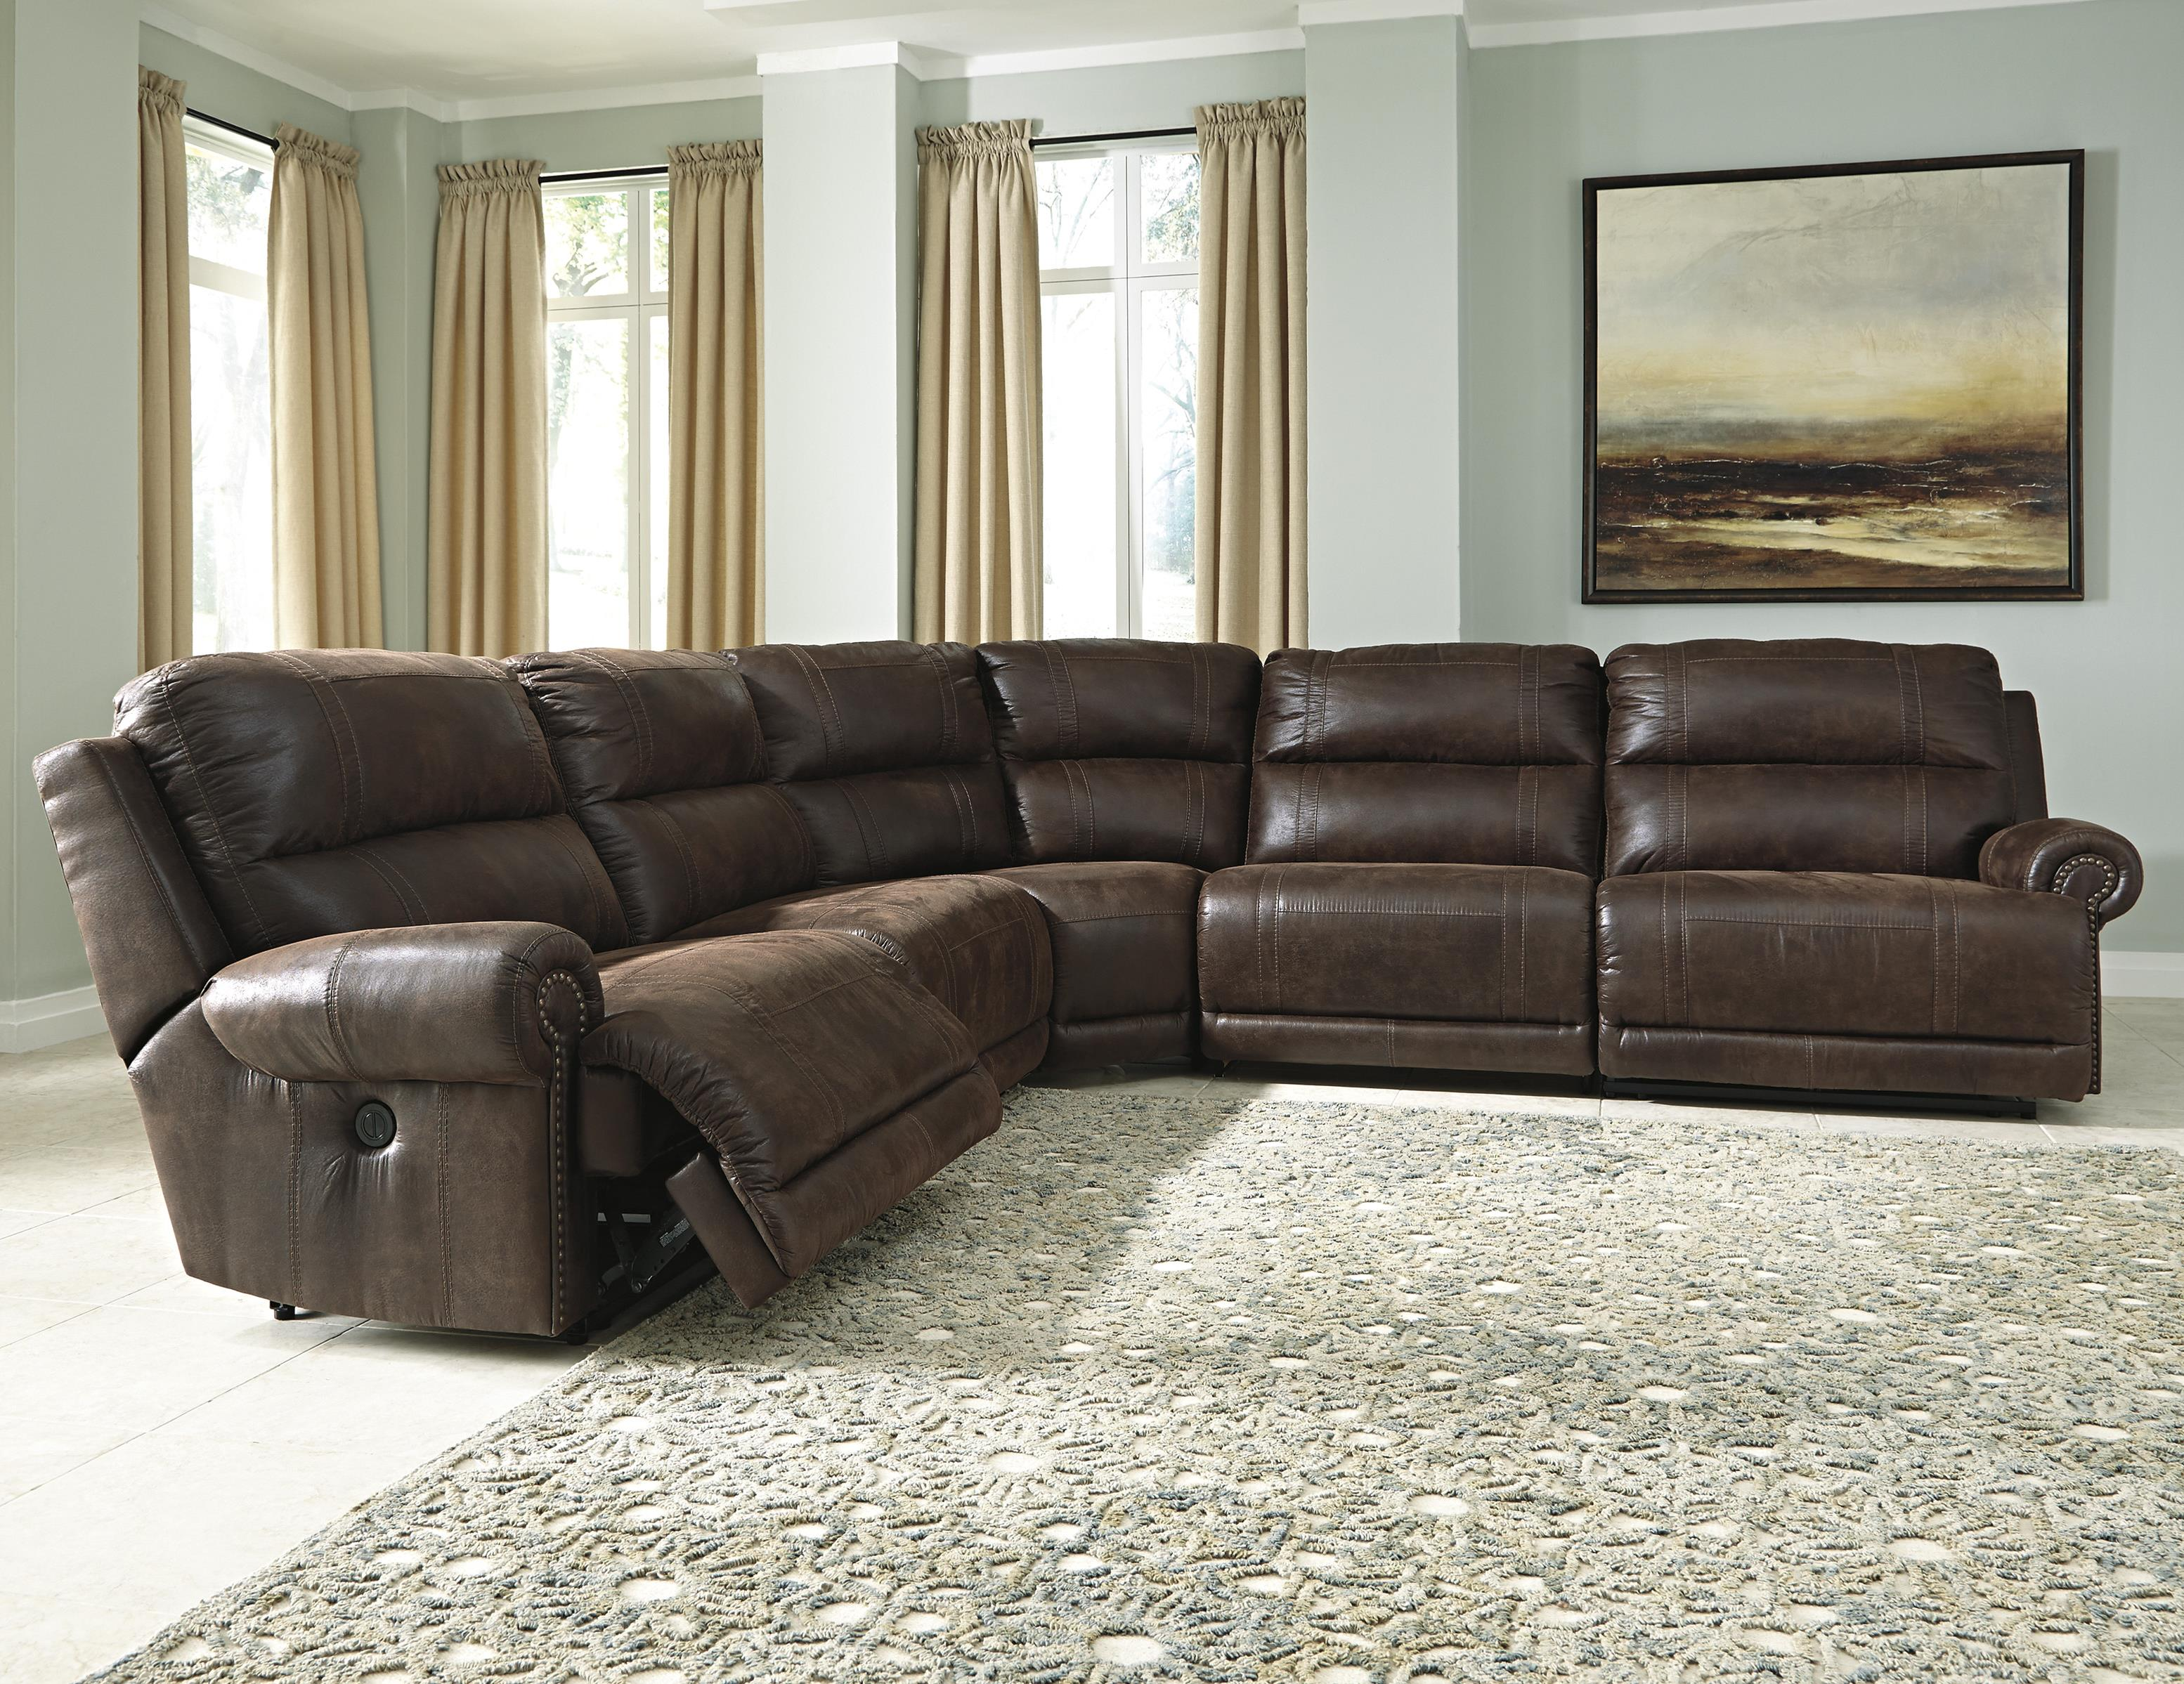 Signature Design by Ashley Luttrell 5-Piece Power Reclining Sectional - Item Number: 9310158+2x46+77+62